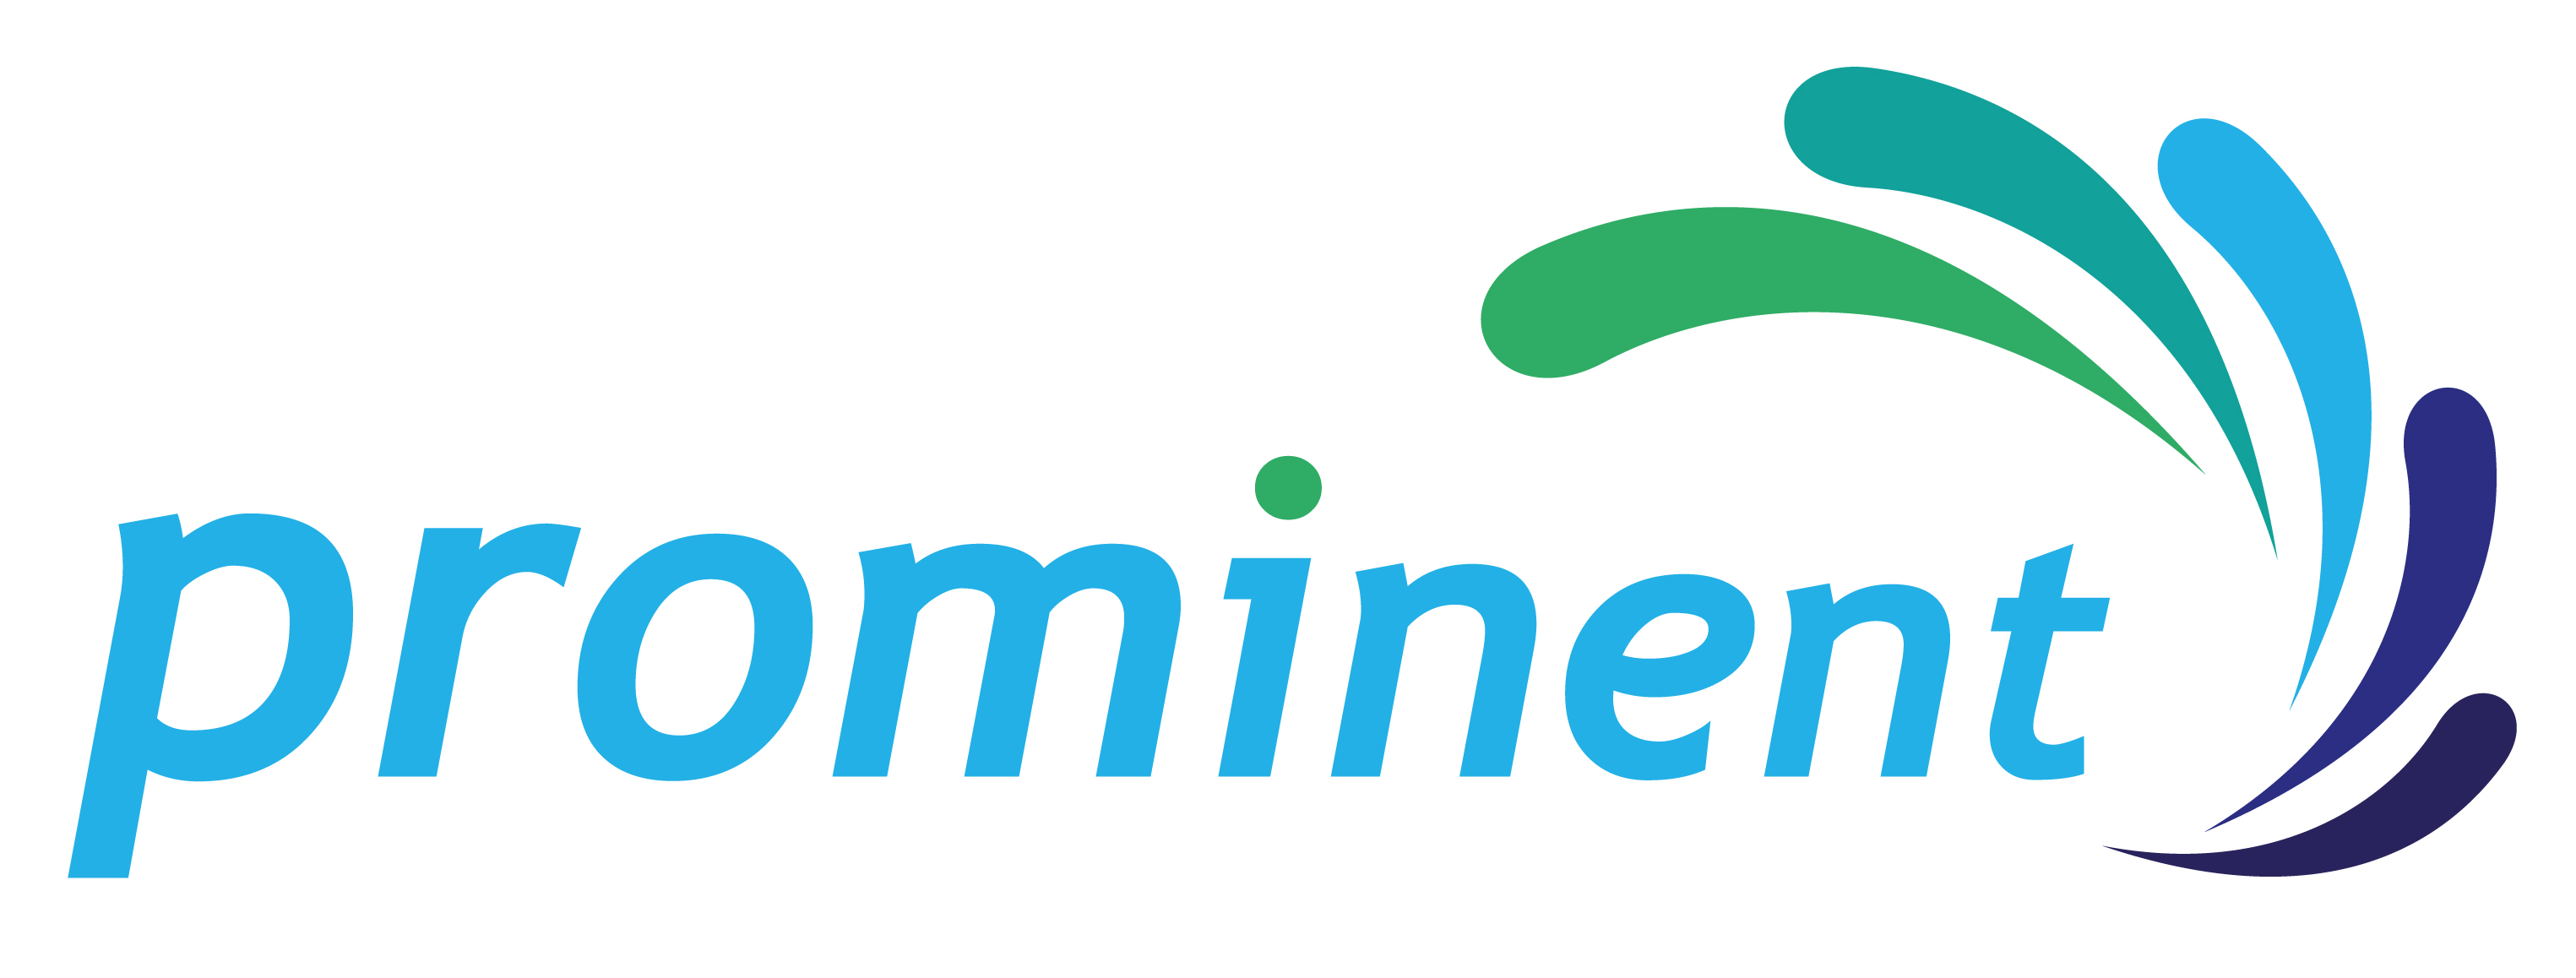 150520 Prominent logo